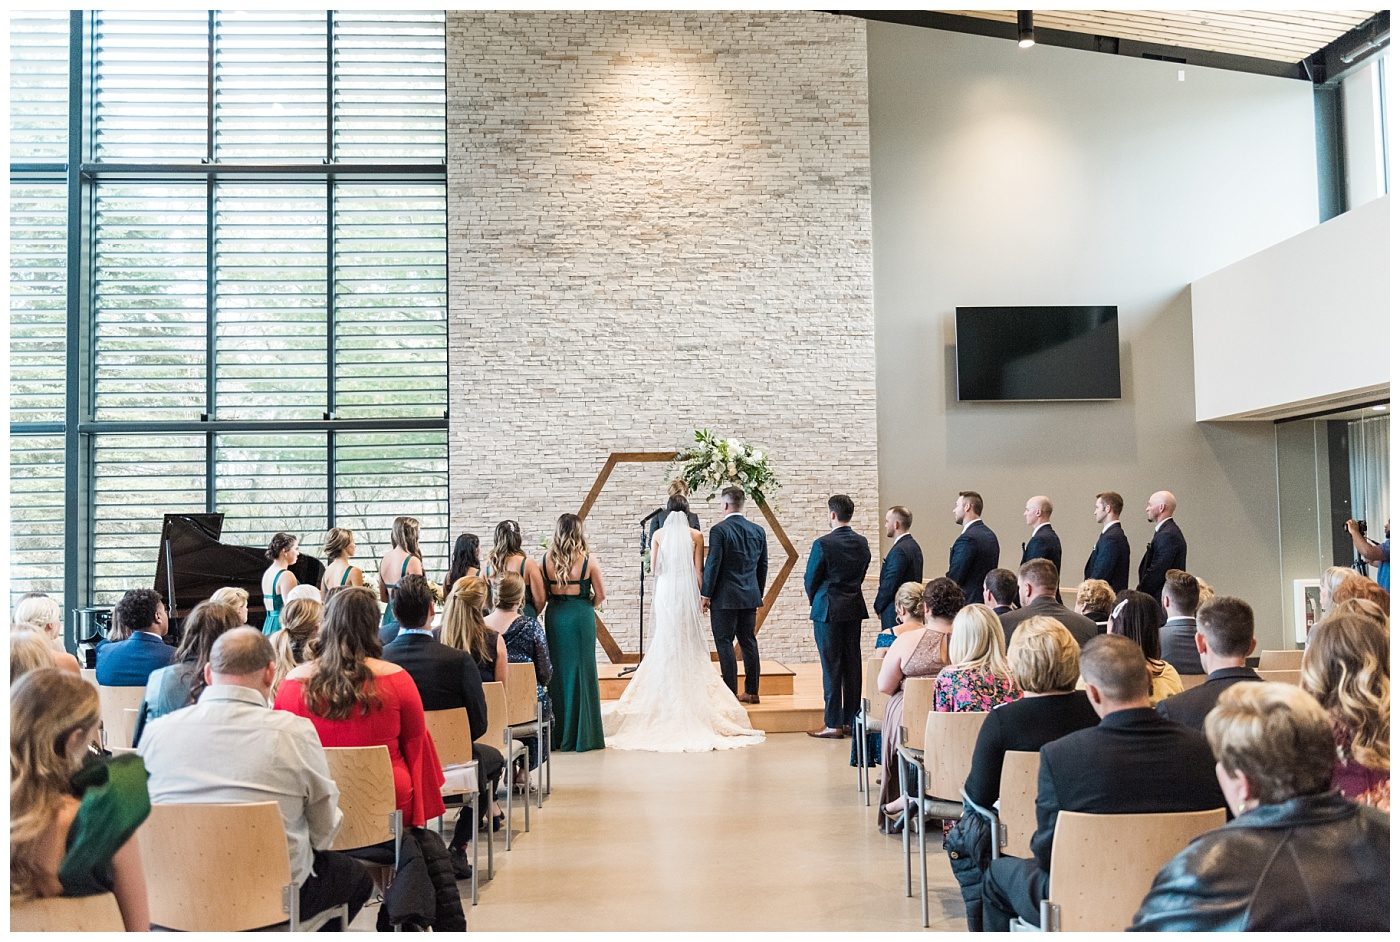 Stephanie Marie Photography Unitarian Universalist Society Church Ceremony Hotel Kirkwood Reception Cedar Rapids Iowa City Wedding Photographer Sean Madison Moore_0039.jpg